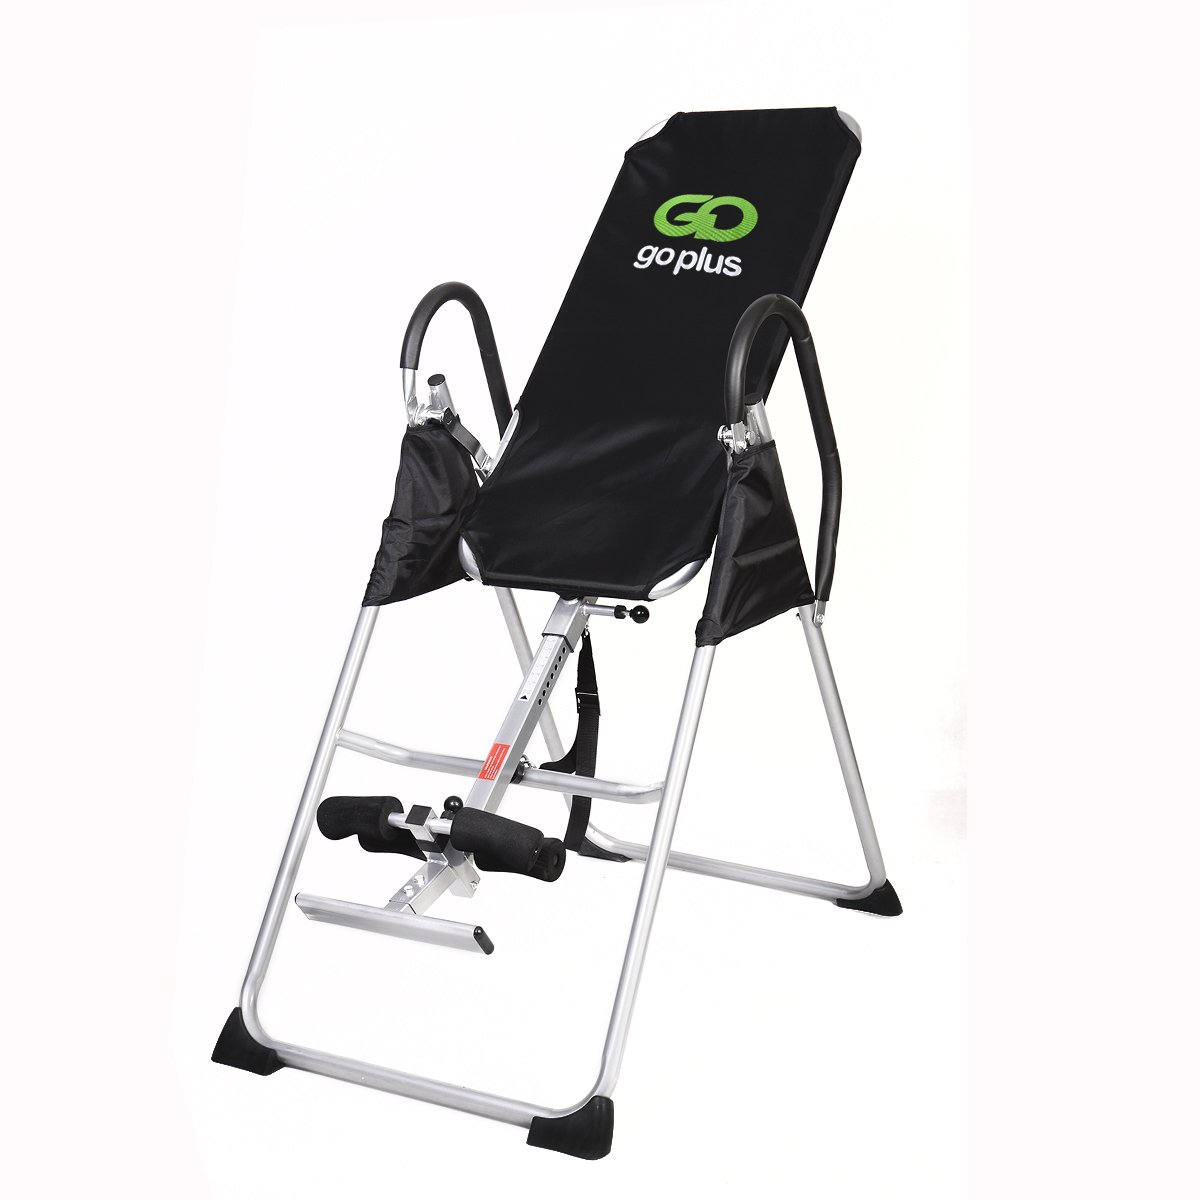 Inversion Table Deluxe Fitness Chiropractic Table Back Pain Relief Exercise TKT-11 by TKT-11